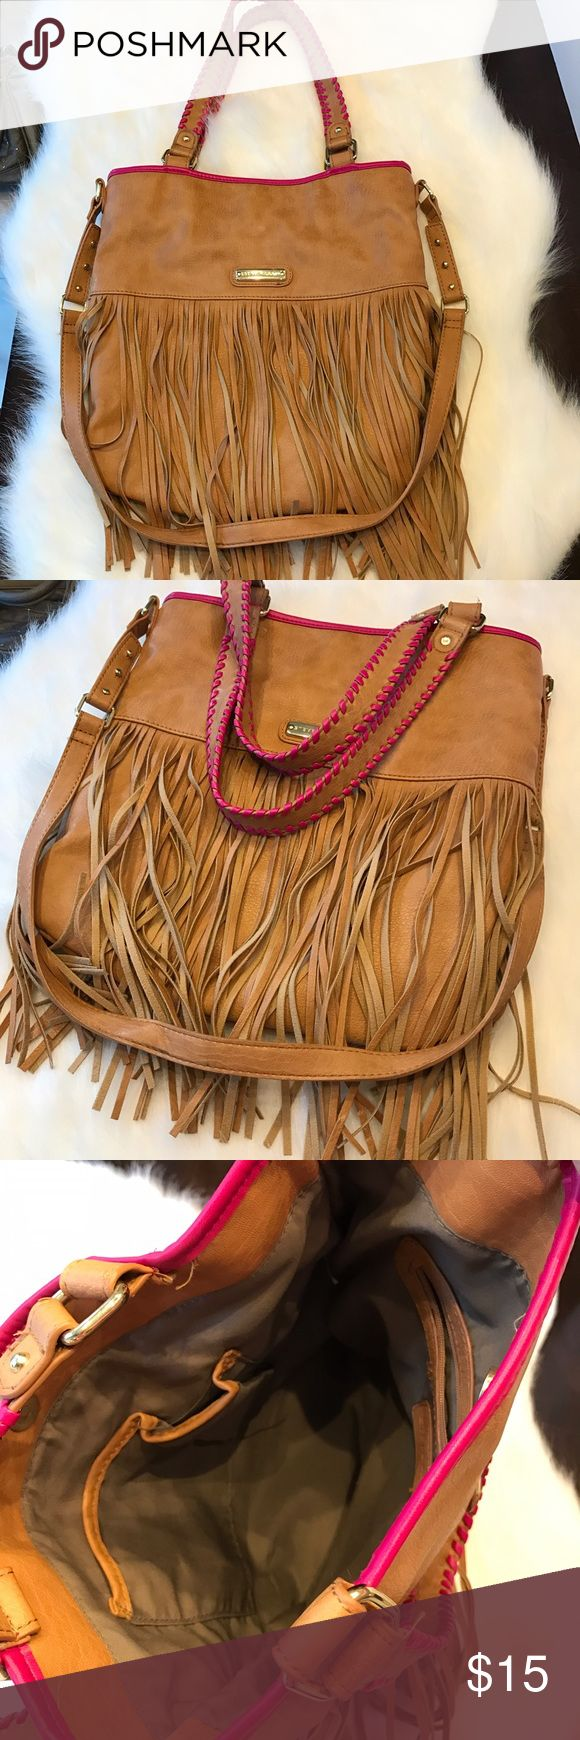 Steve Madden like new purse fringe handbag 👜 Perfect condition, only used once. Steve Madden purse, clean inside and out like new. Tan with pink piping. Really cool purse. Can be used as a shoulder bag or as or crossover Steve Madden Bags Shoulder Bags